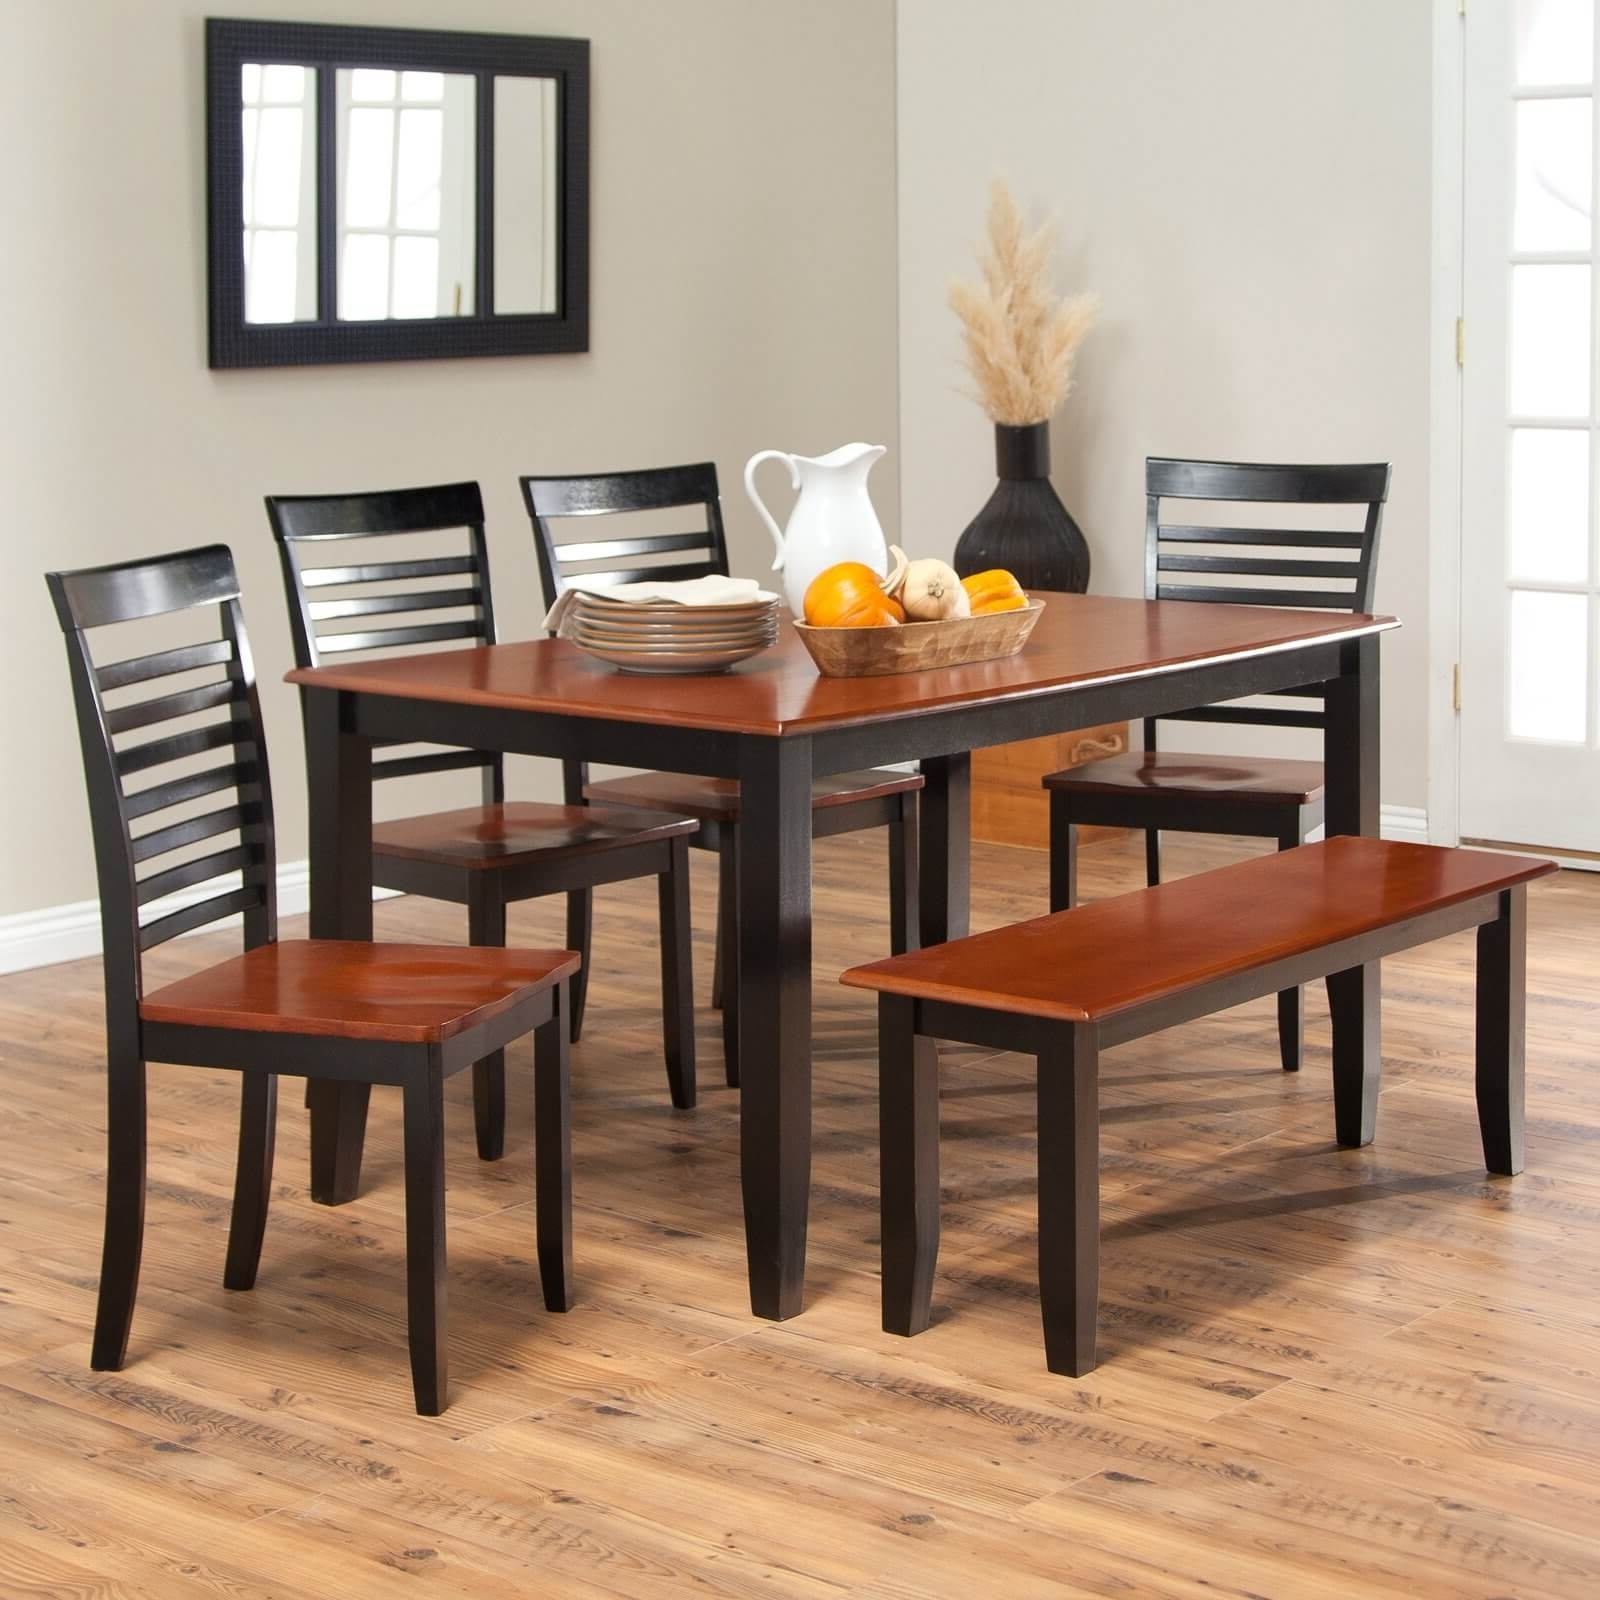 Most Popular 26 Dining Room Sets (Big And Small) With Bench Seating (2018) In Dark Solid Wood Dining Tables (View 10 of 25)